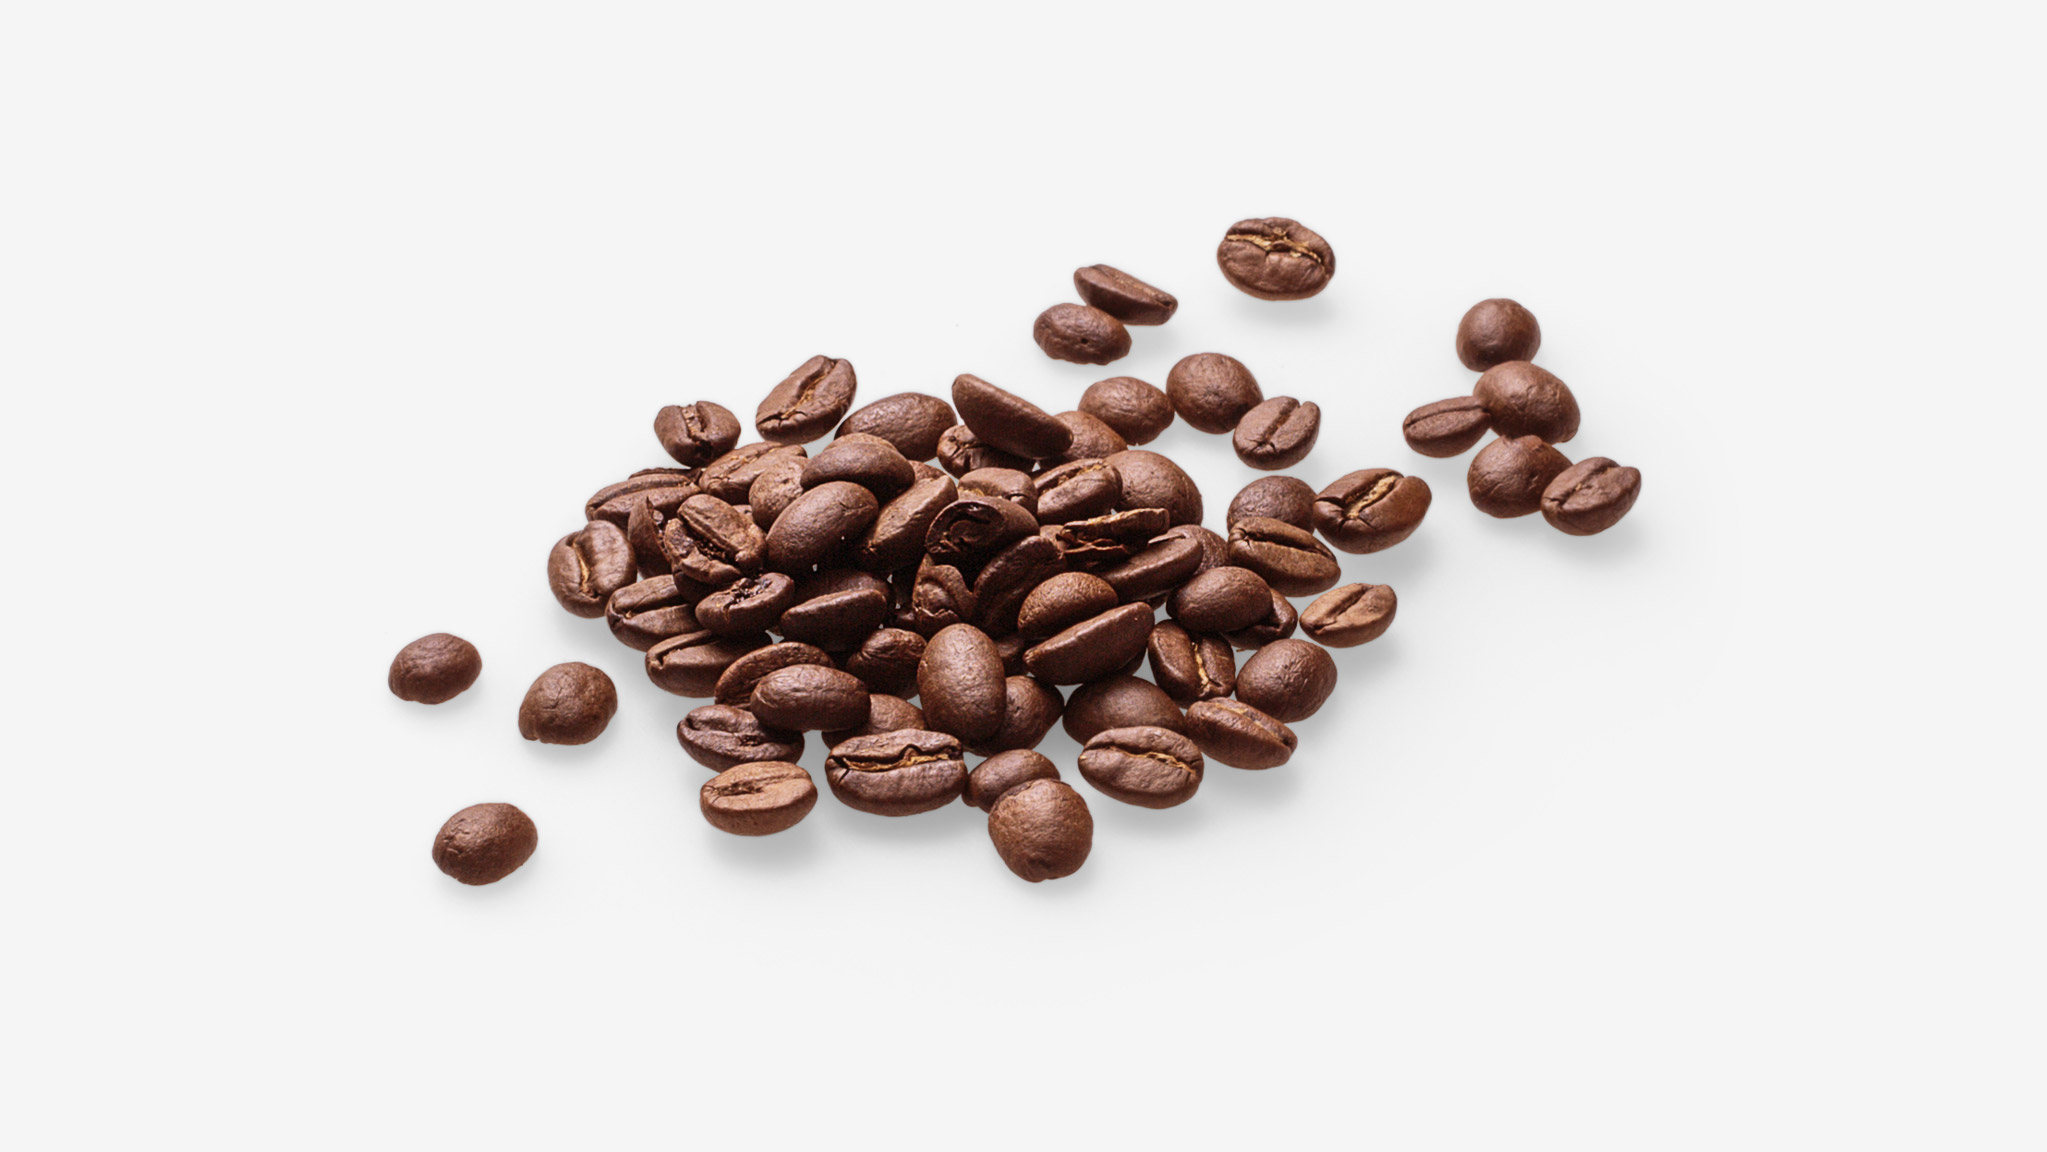 Coffee PSD image with transparent background